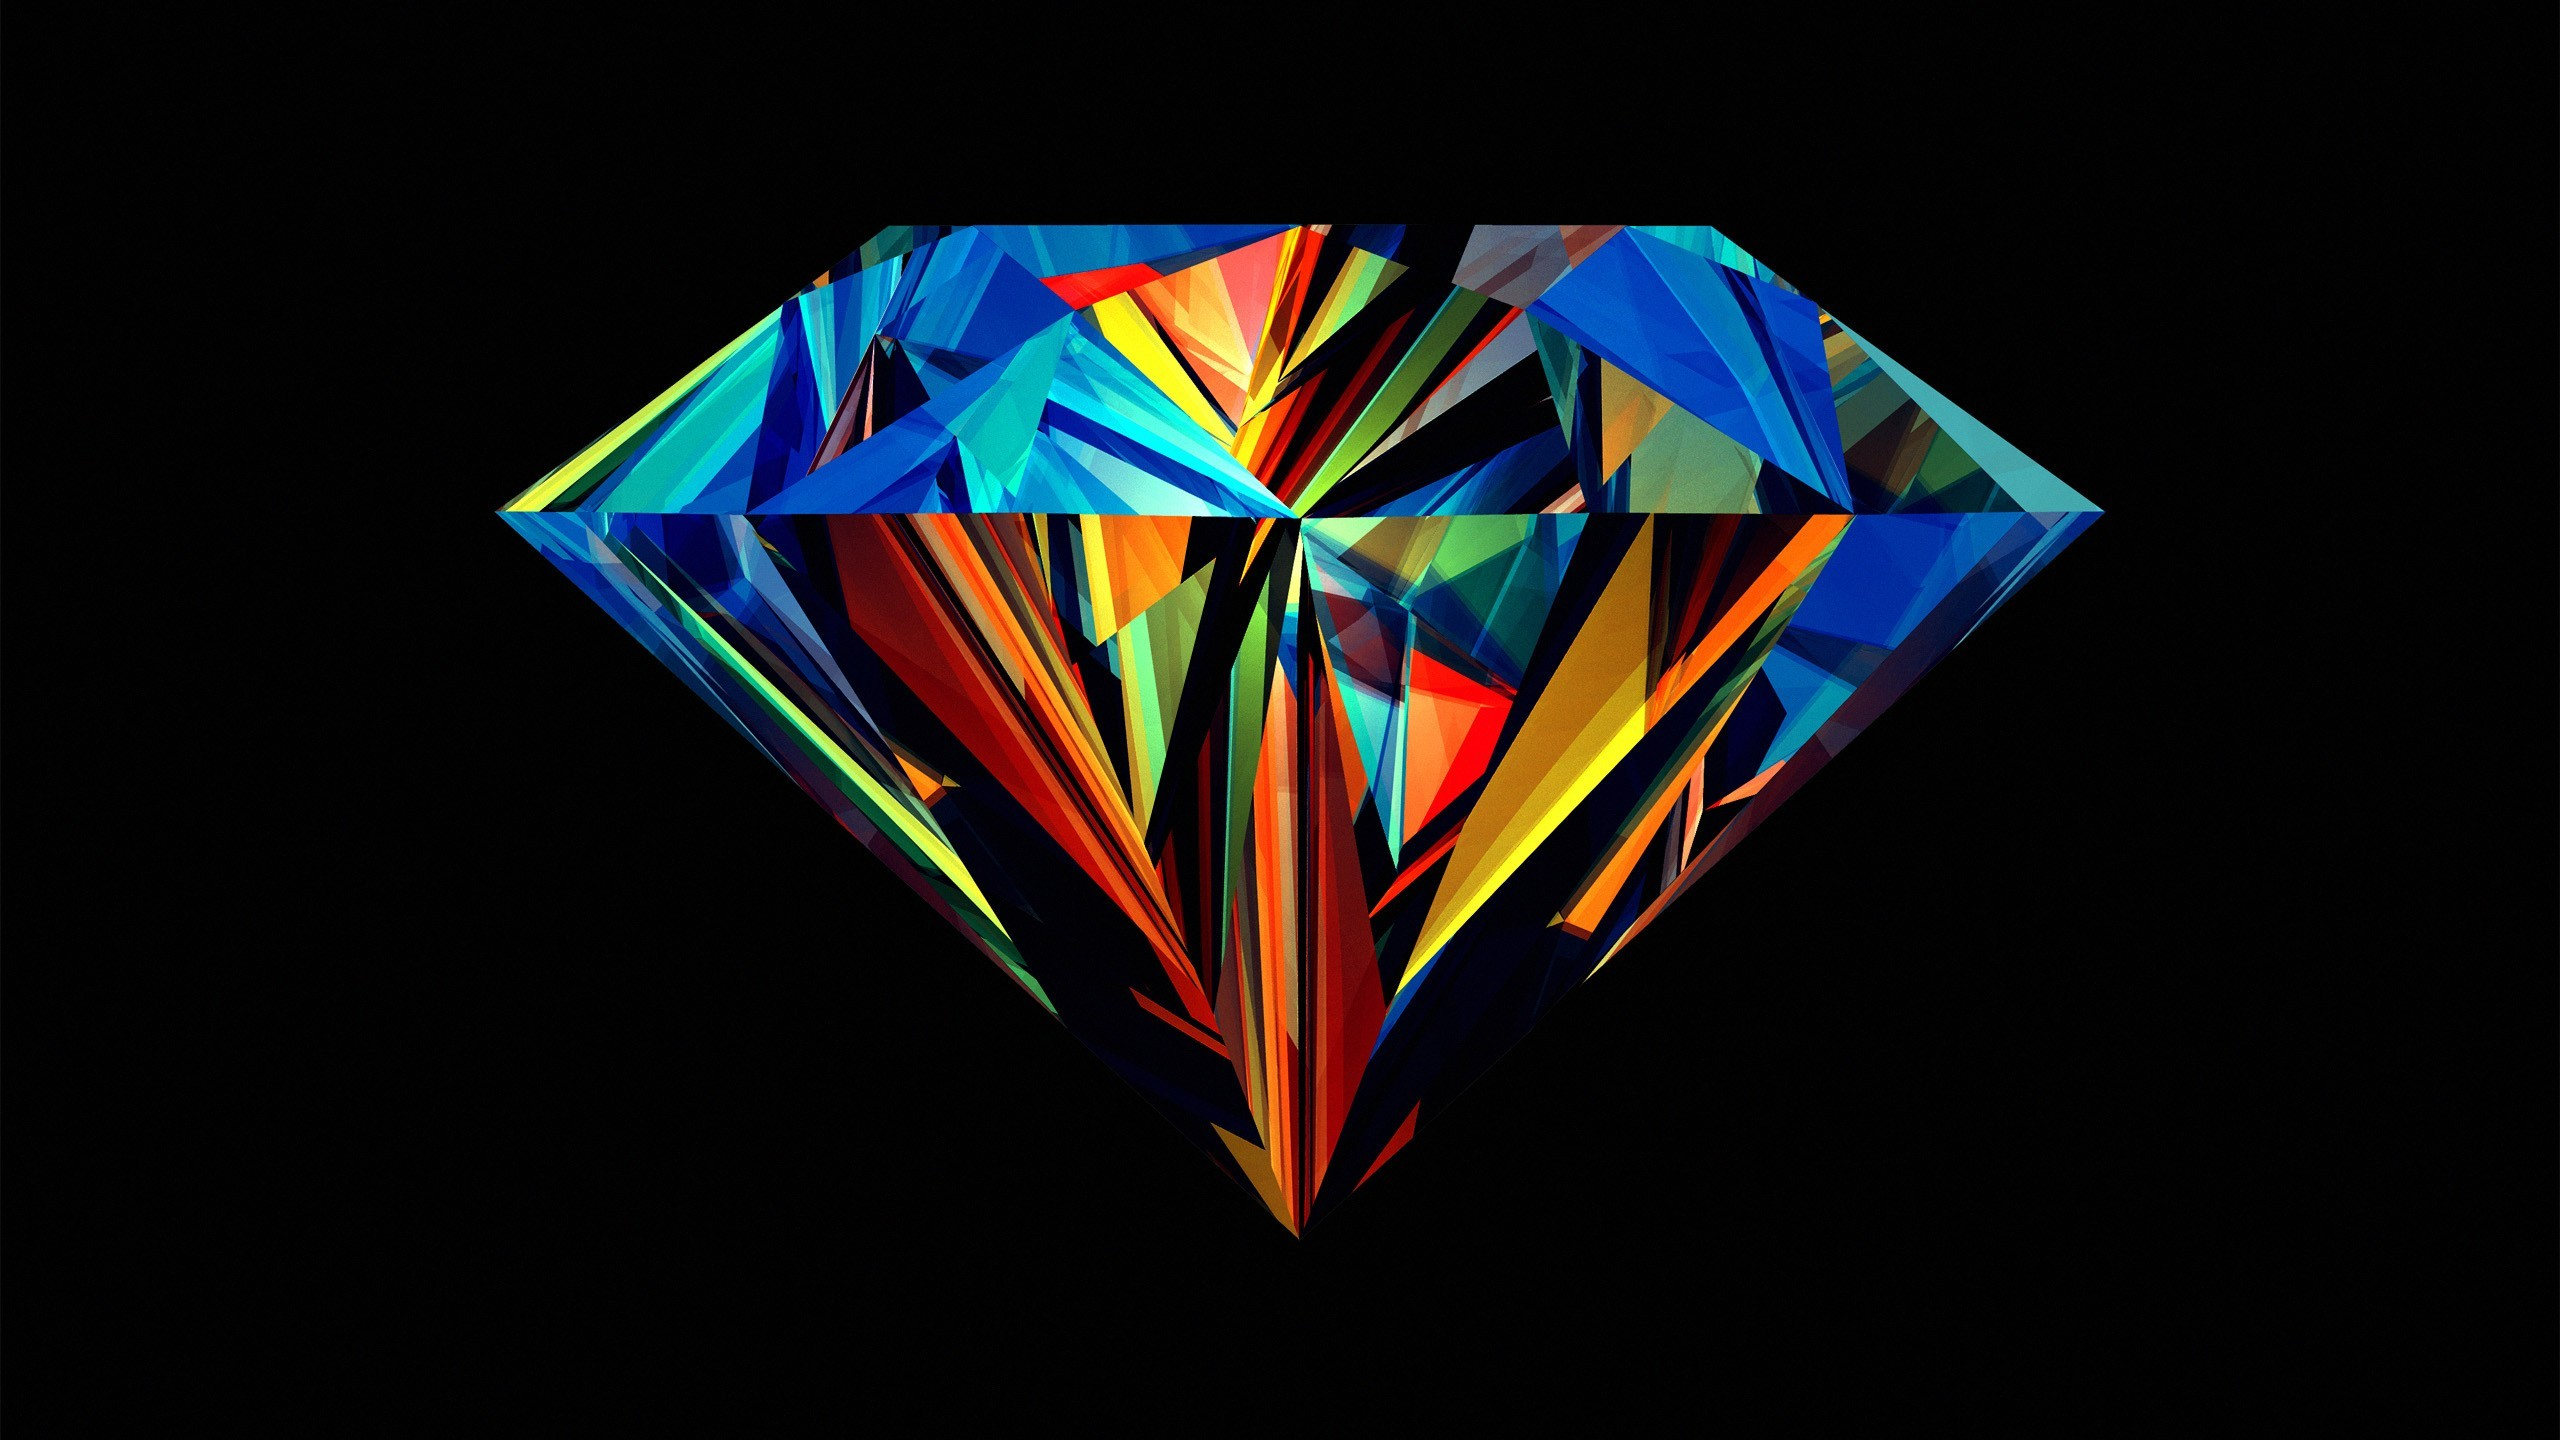 Abstract Black Background Dark Diamond Geometry Justin Maller Multicolor  Shapes …